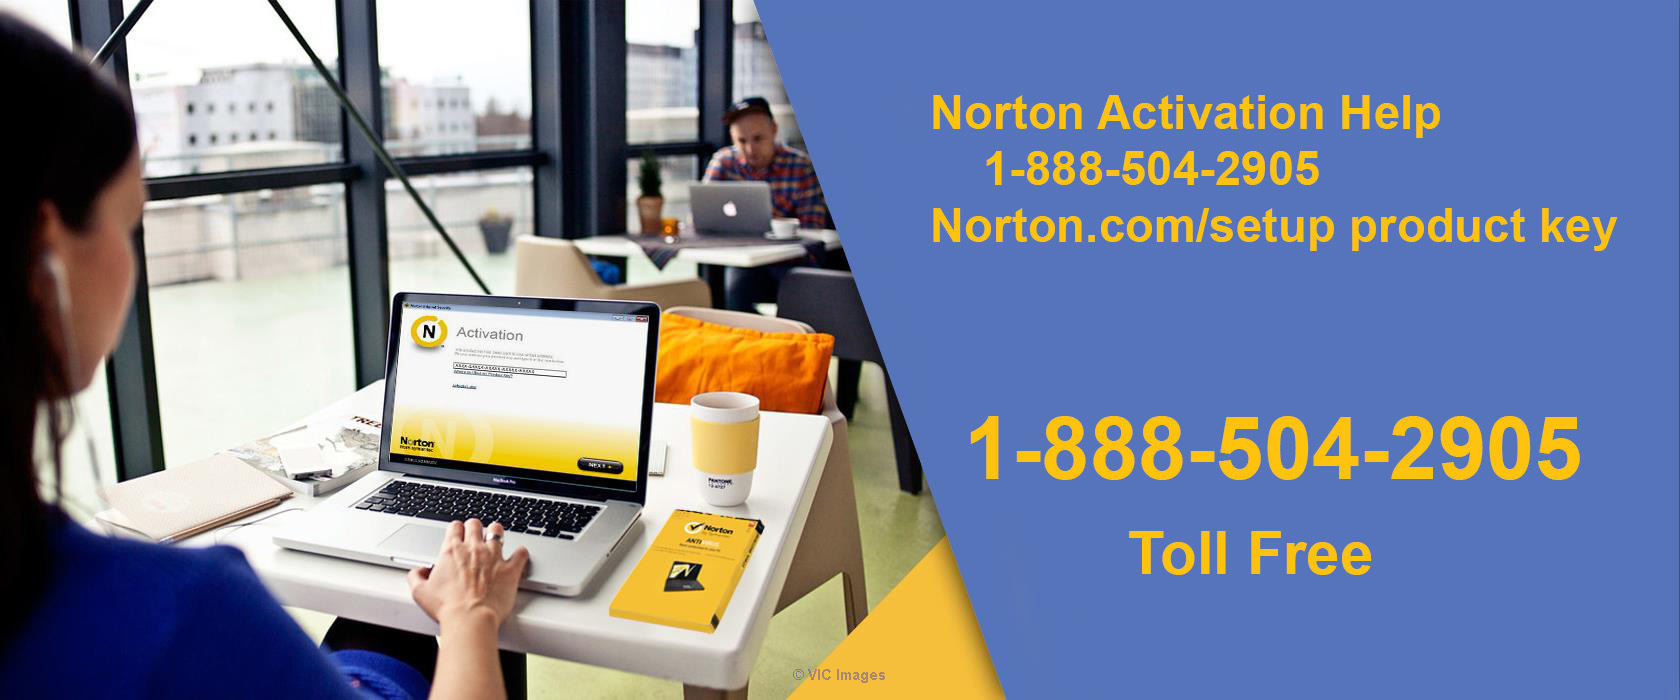 1888:504;2905 Antivirus Norton Setup with Product Key Call  calgary